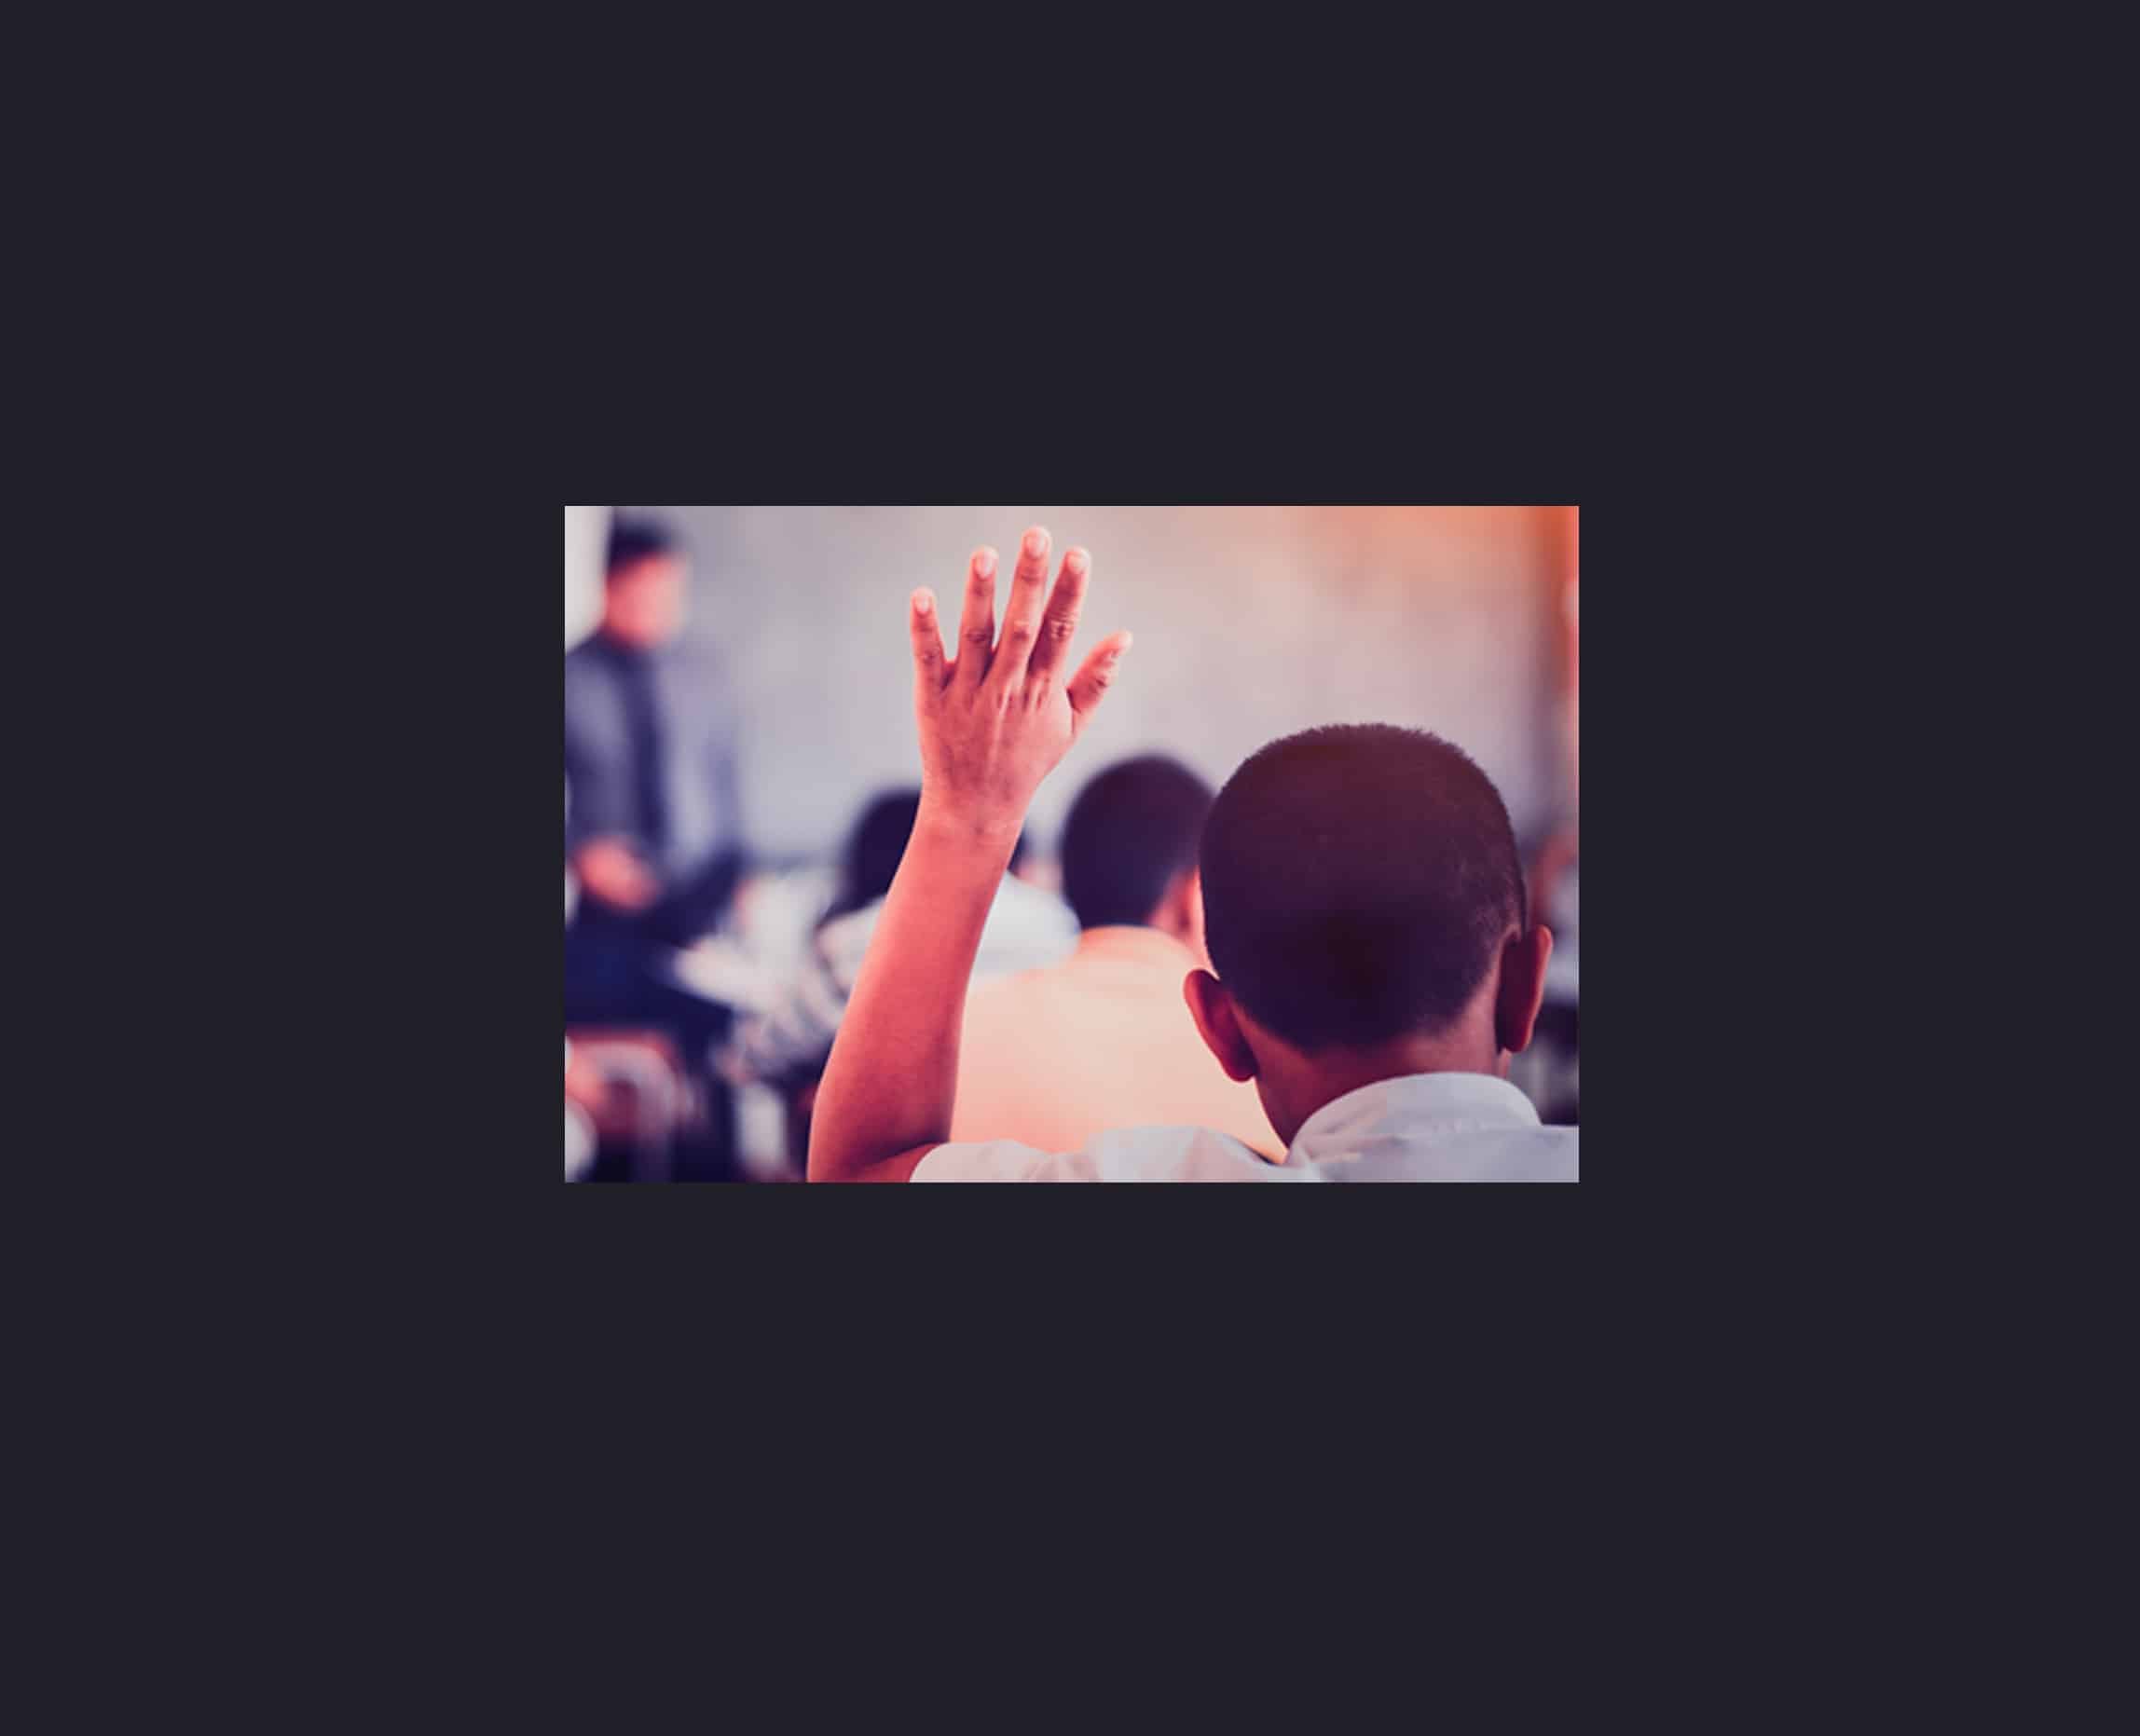 A child in classroom raising his hand